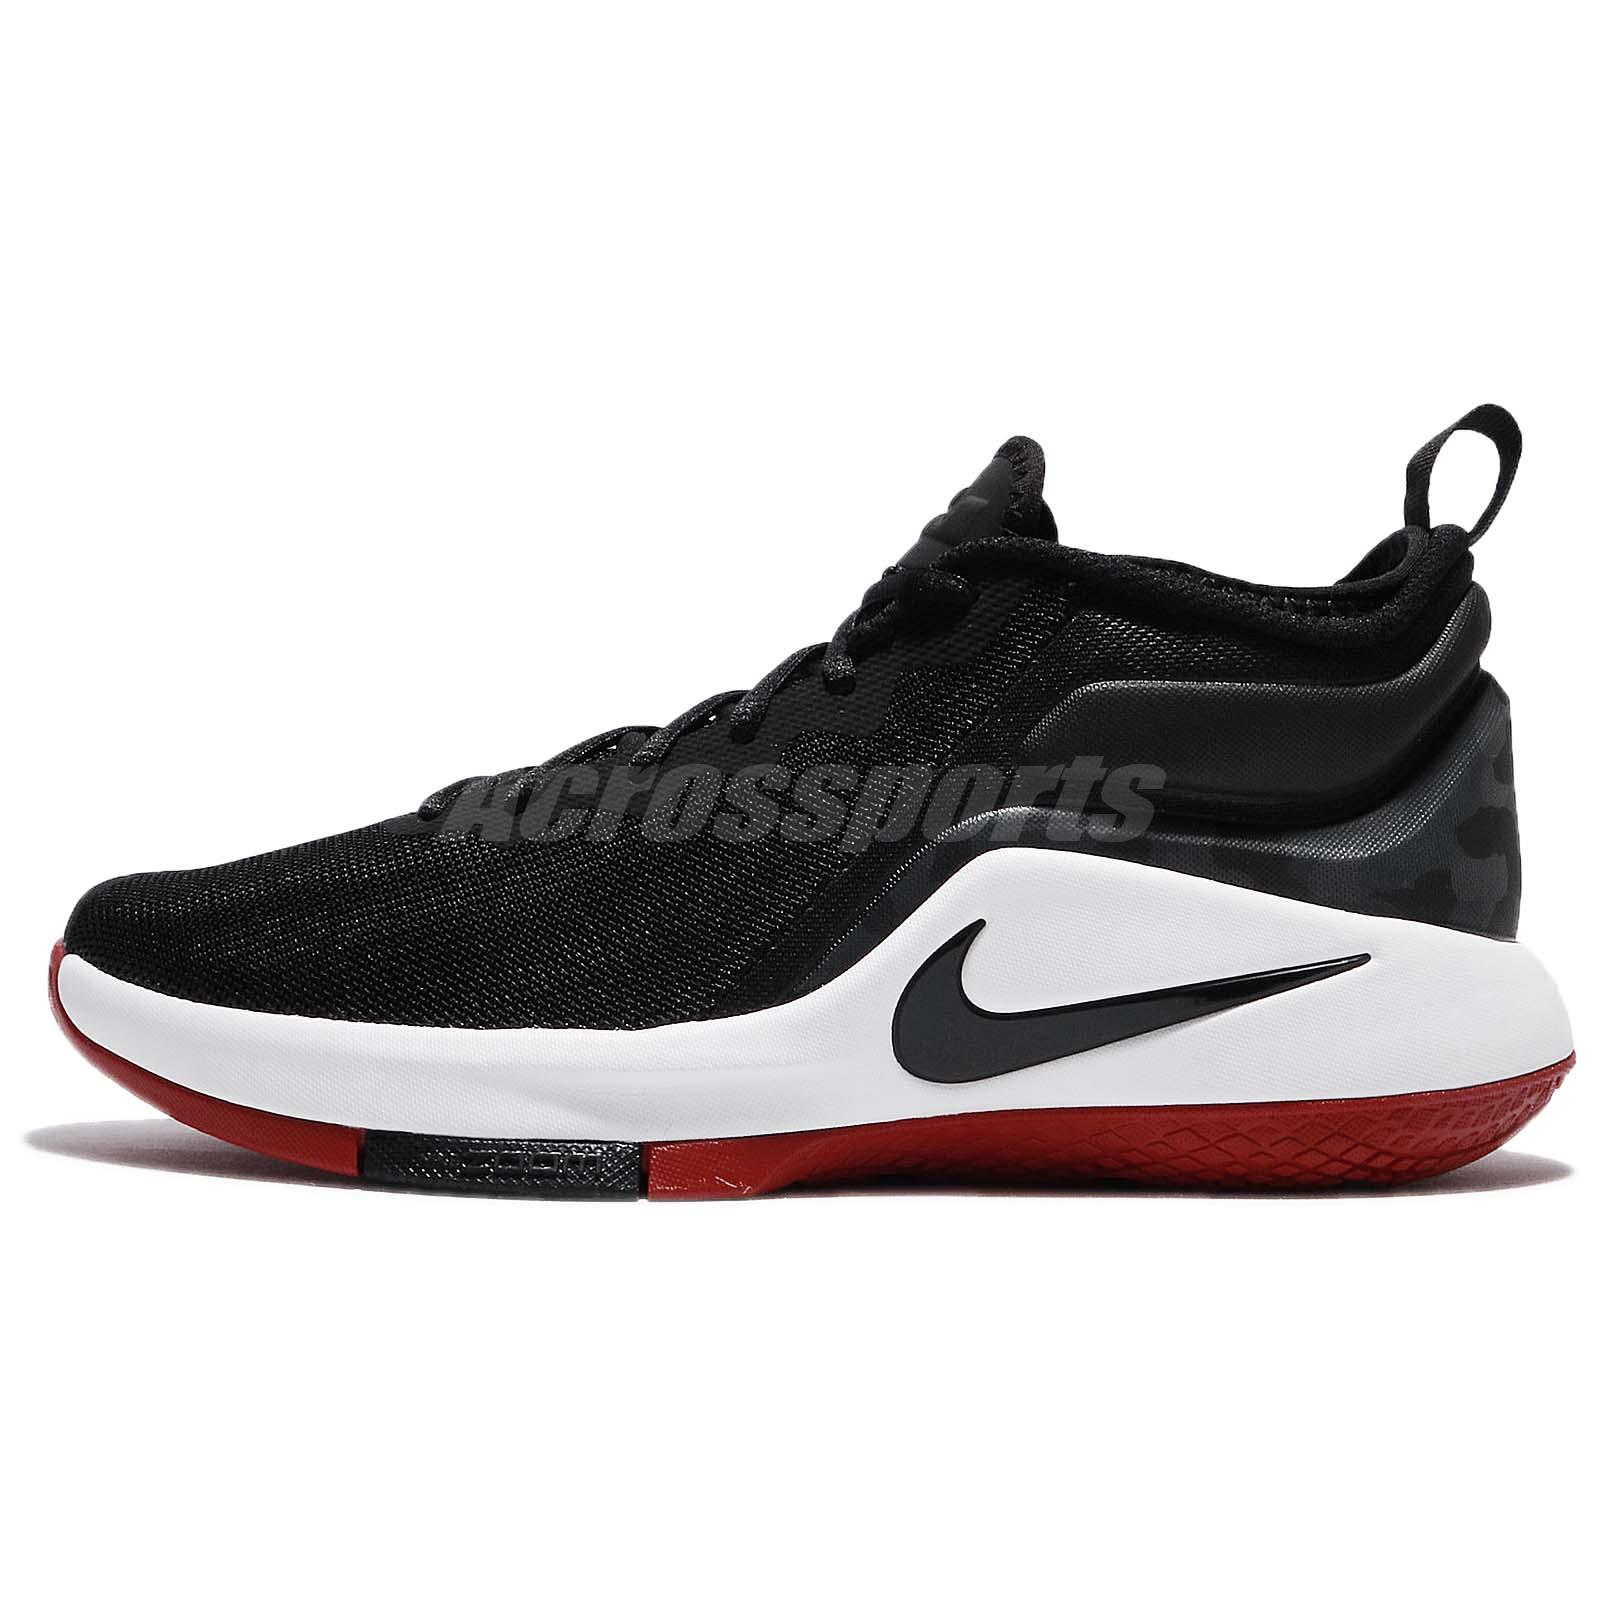 f9059dd96052 ... reduced nike lebron witness ii ep 2 james bred black red men basketball  shoe aa3820 006